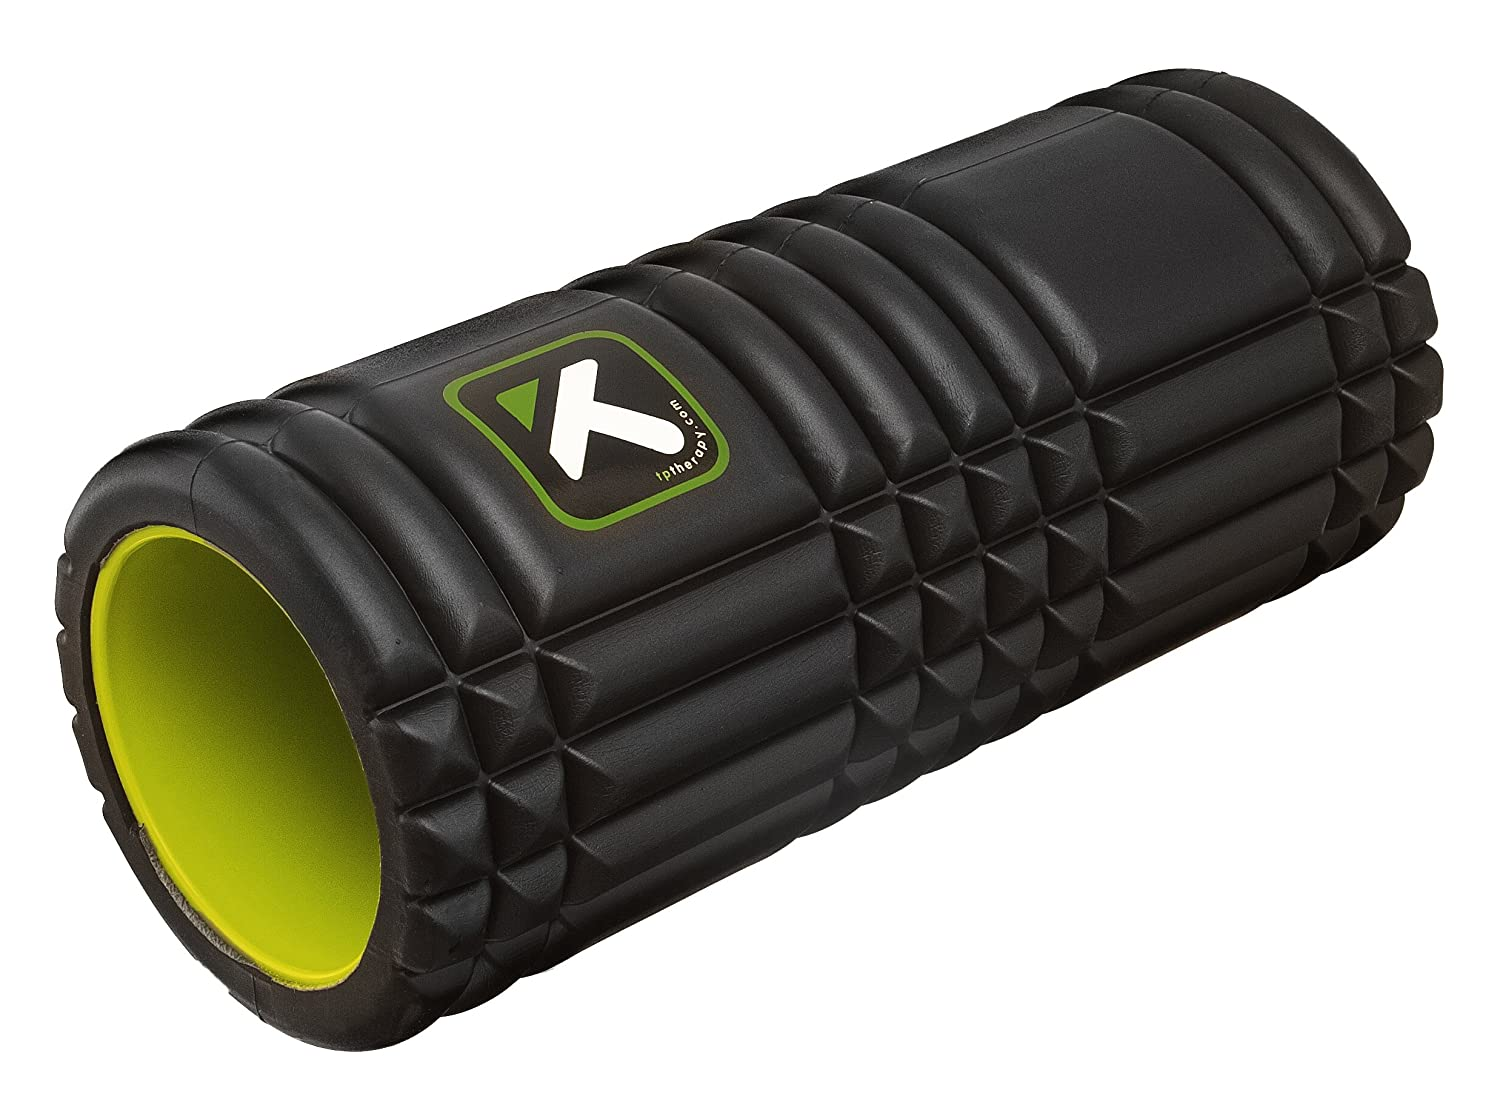 TriggerPoint GRID Foam Roller with Free Online Instructional Video